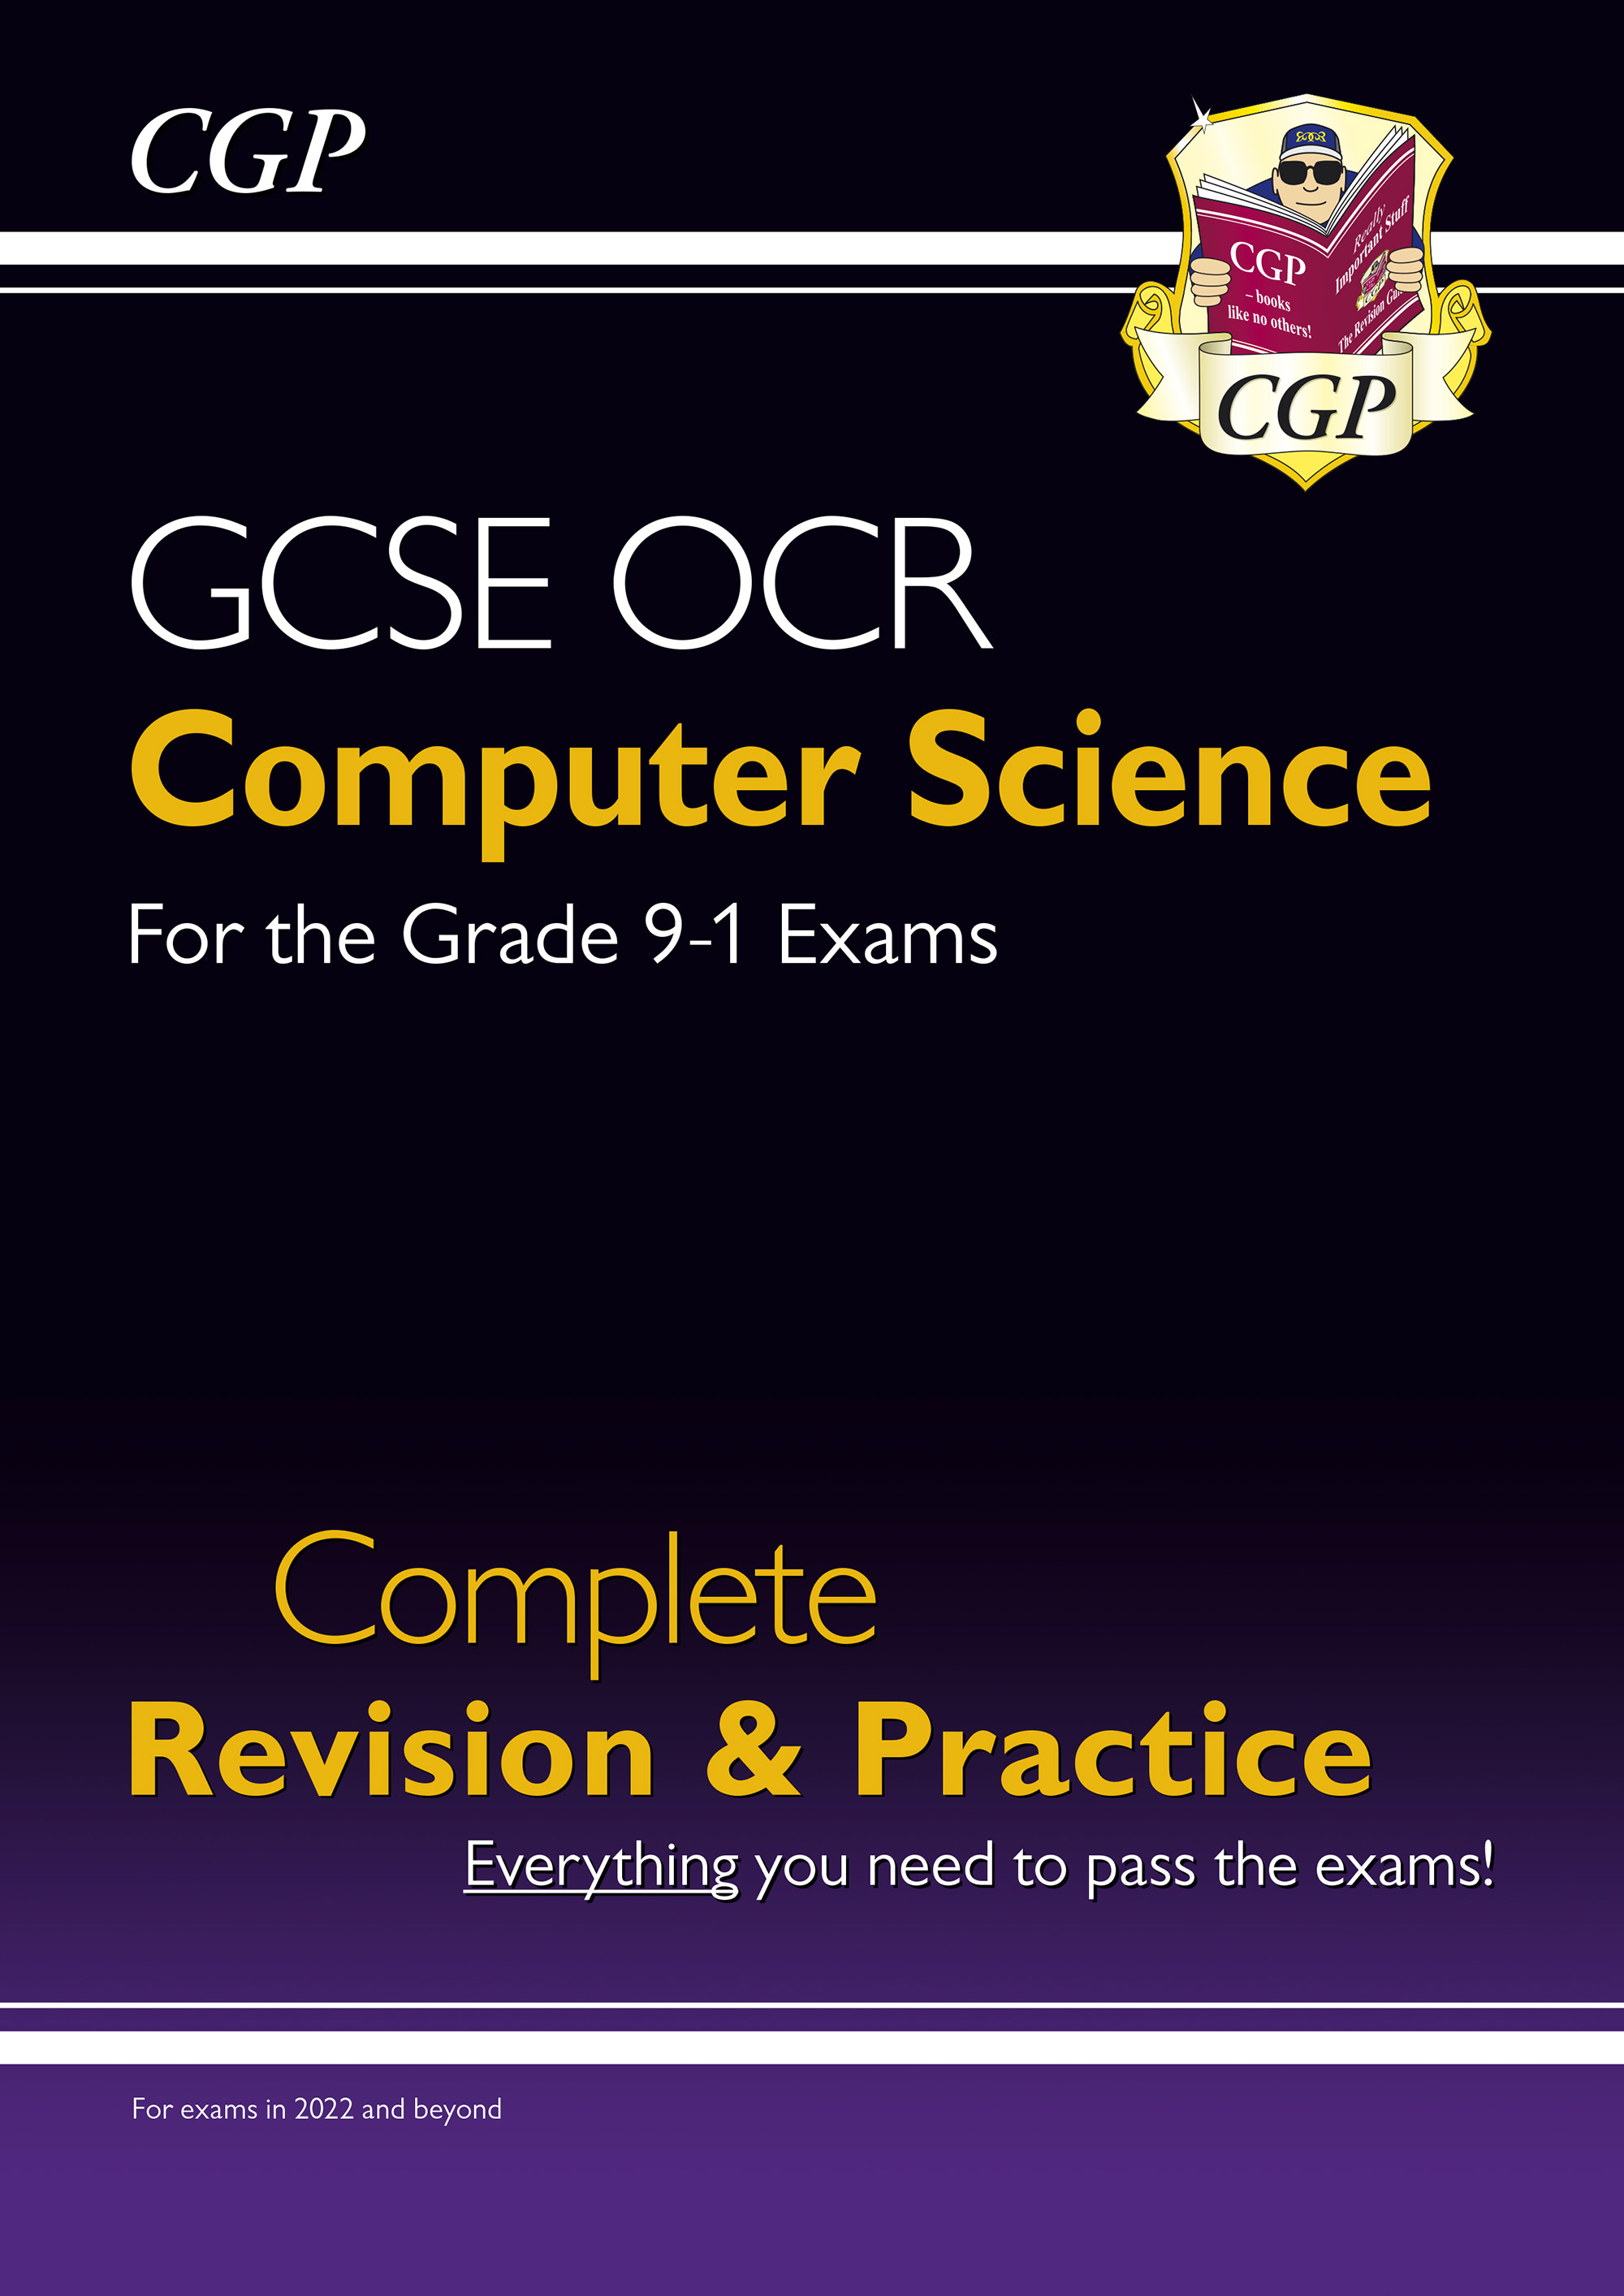 COS42DK - New GCSE Computer Science OCR Complete Revision & Practice - for exams in 2022 and beyond